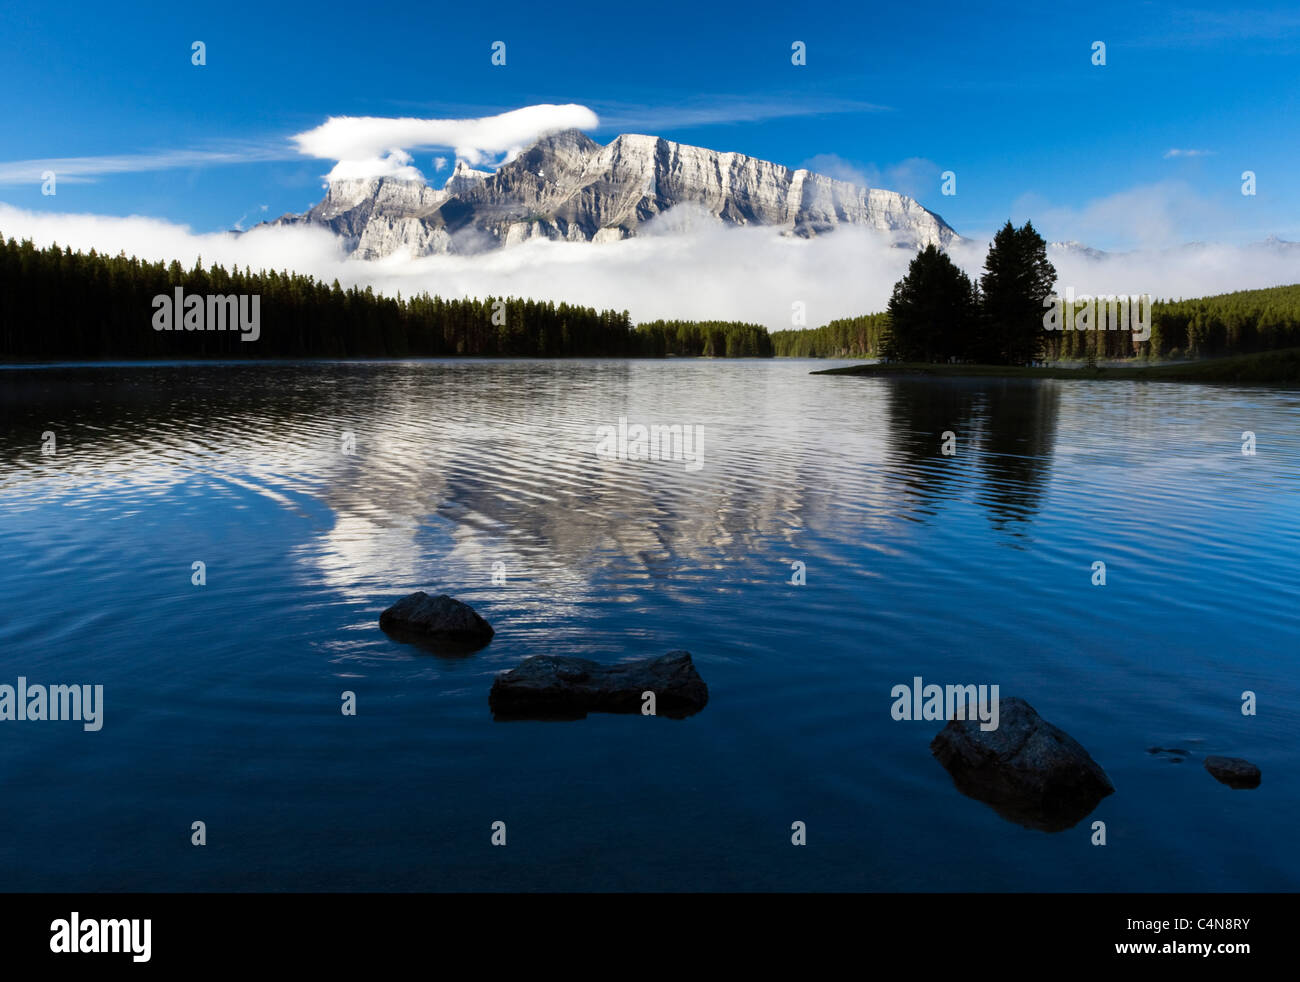 Two Jack Lake with Mount Rundle, Banff National Park, Alberta, Canada. Stock Photo